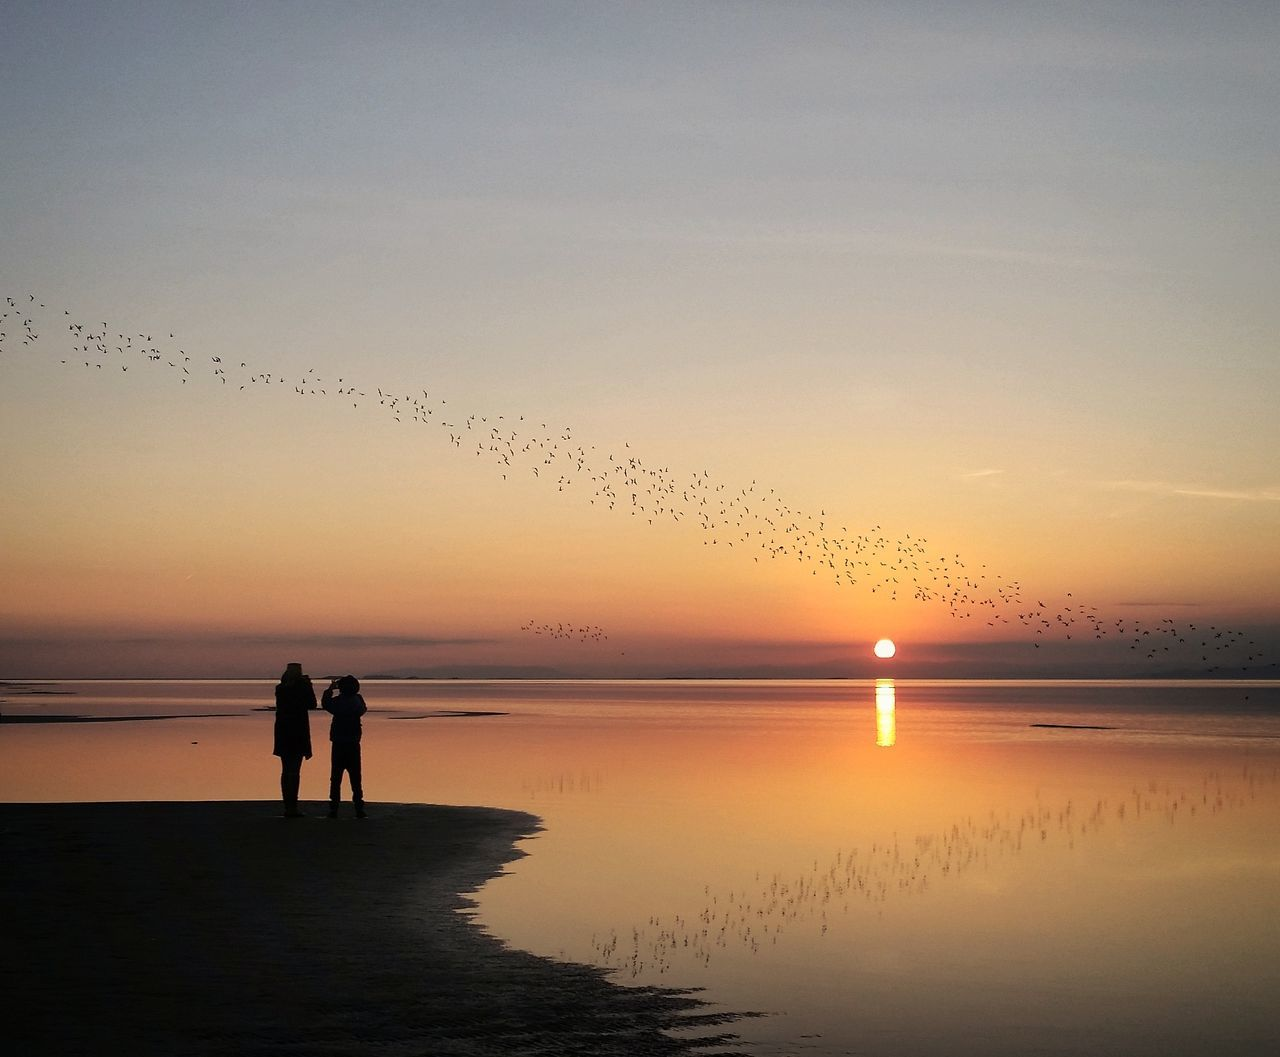 sunset, silhouette, nature, sky, water, sea, beauty in nature, beach, scenics, reflection, sun, togetherness, idyllic, tranquil scene, outdoors, tranquility, horizon over water, clear sky, two people, full length, real people, men, bird, people